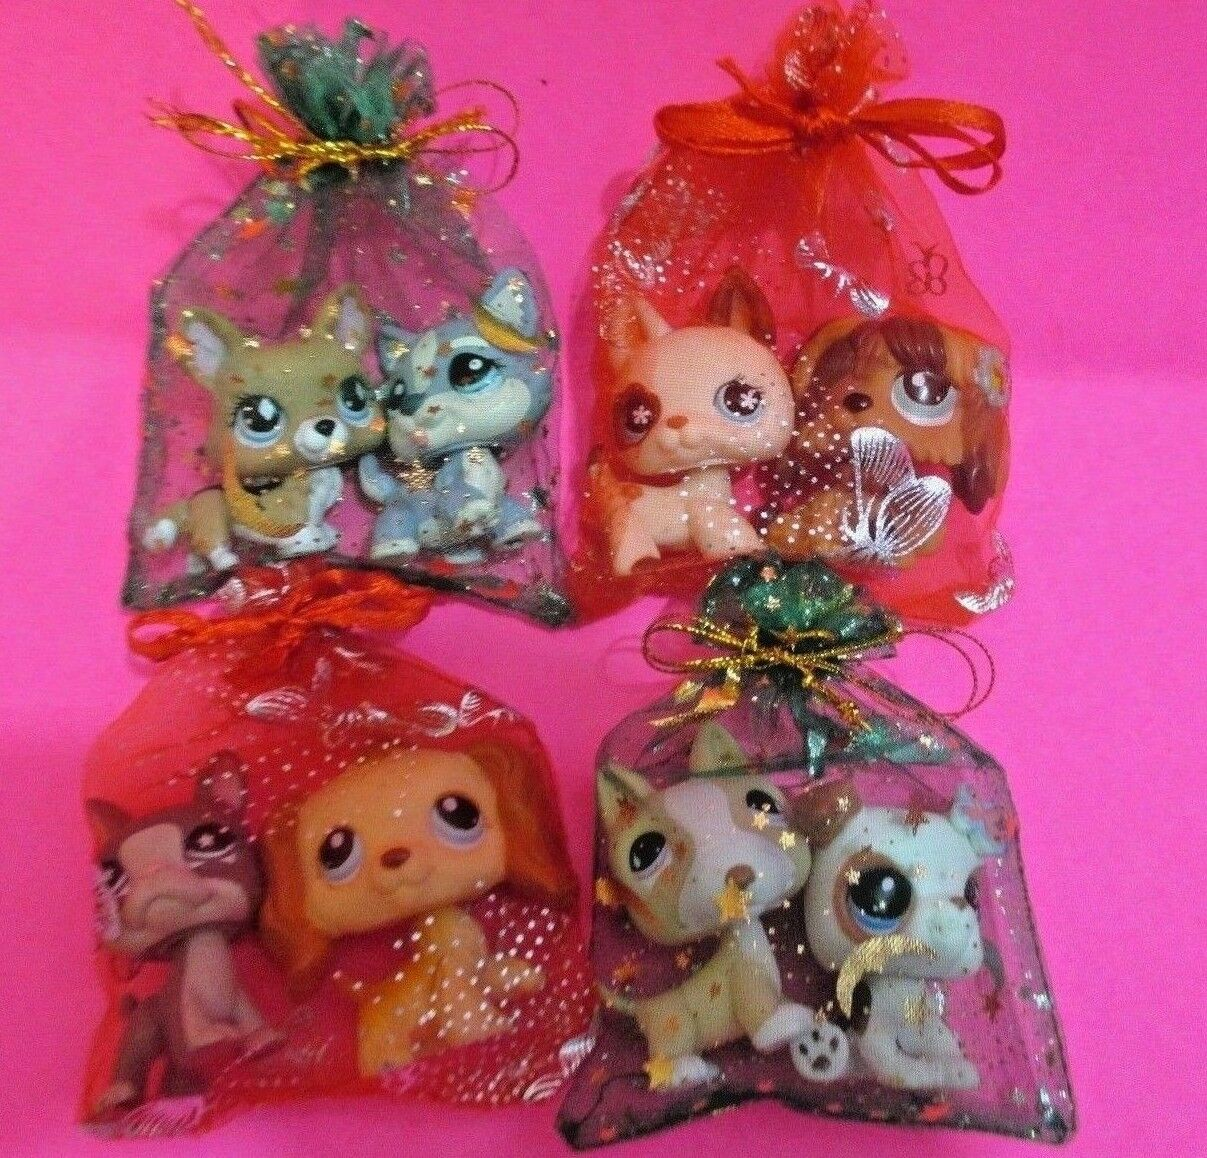 Littlest Pet Shop Lot 2 Random Puppy Dogs Figures Authentic Lps BUY 3 GET 1 FREE